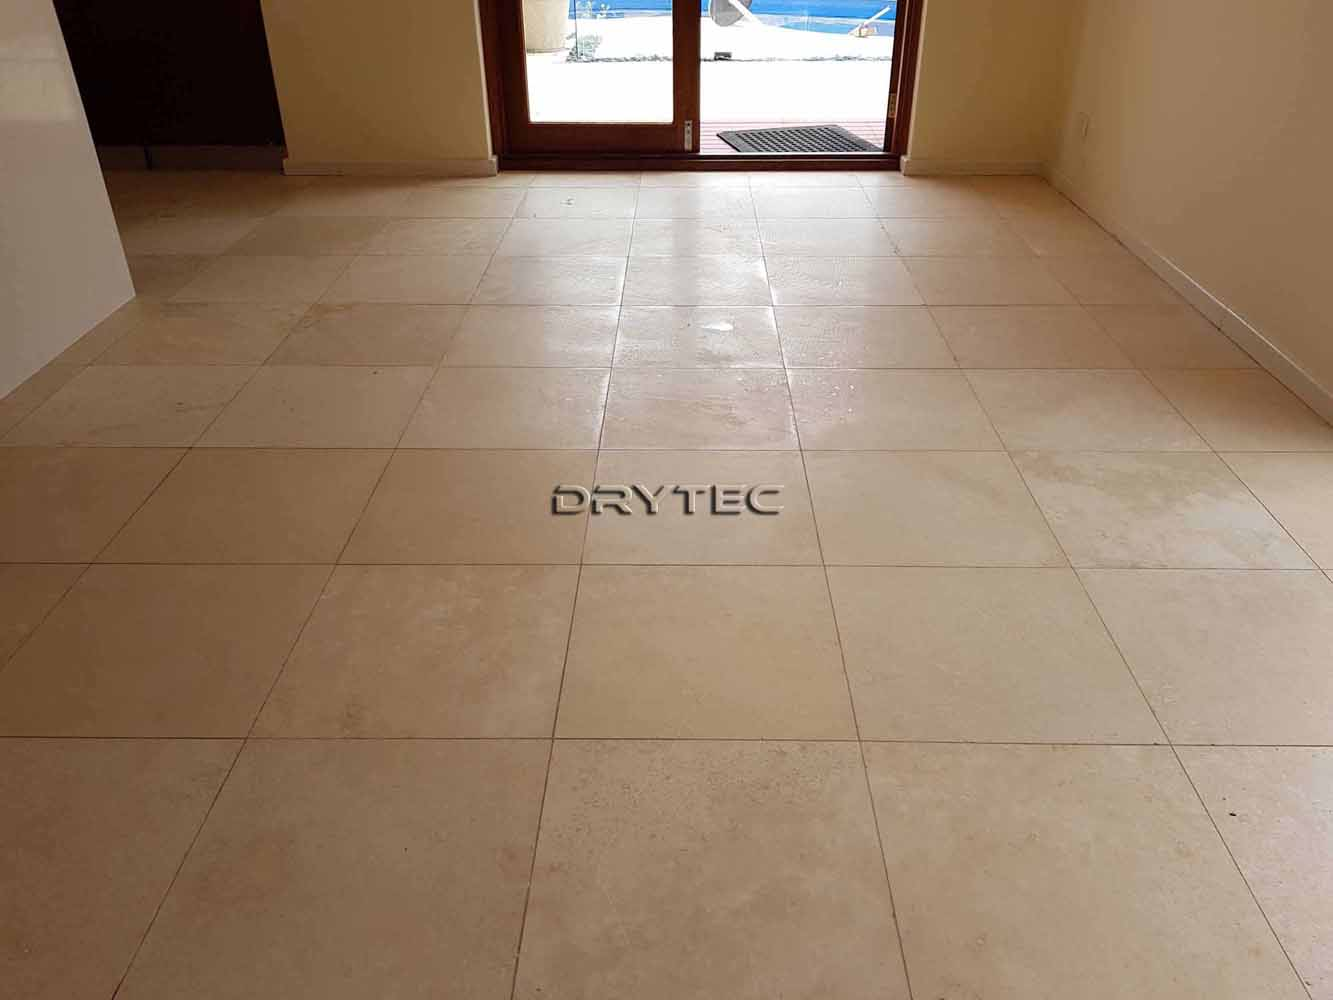 Travertine Floor Tiles Restoration-Grinding-Honing-Polishing-Cleaning and Sealing Service in Perth WA